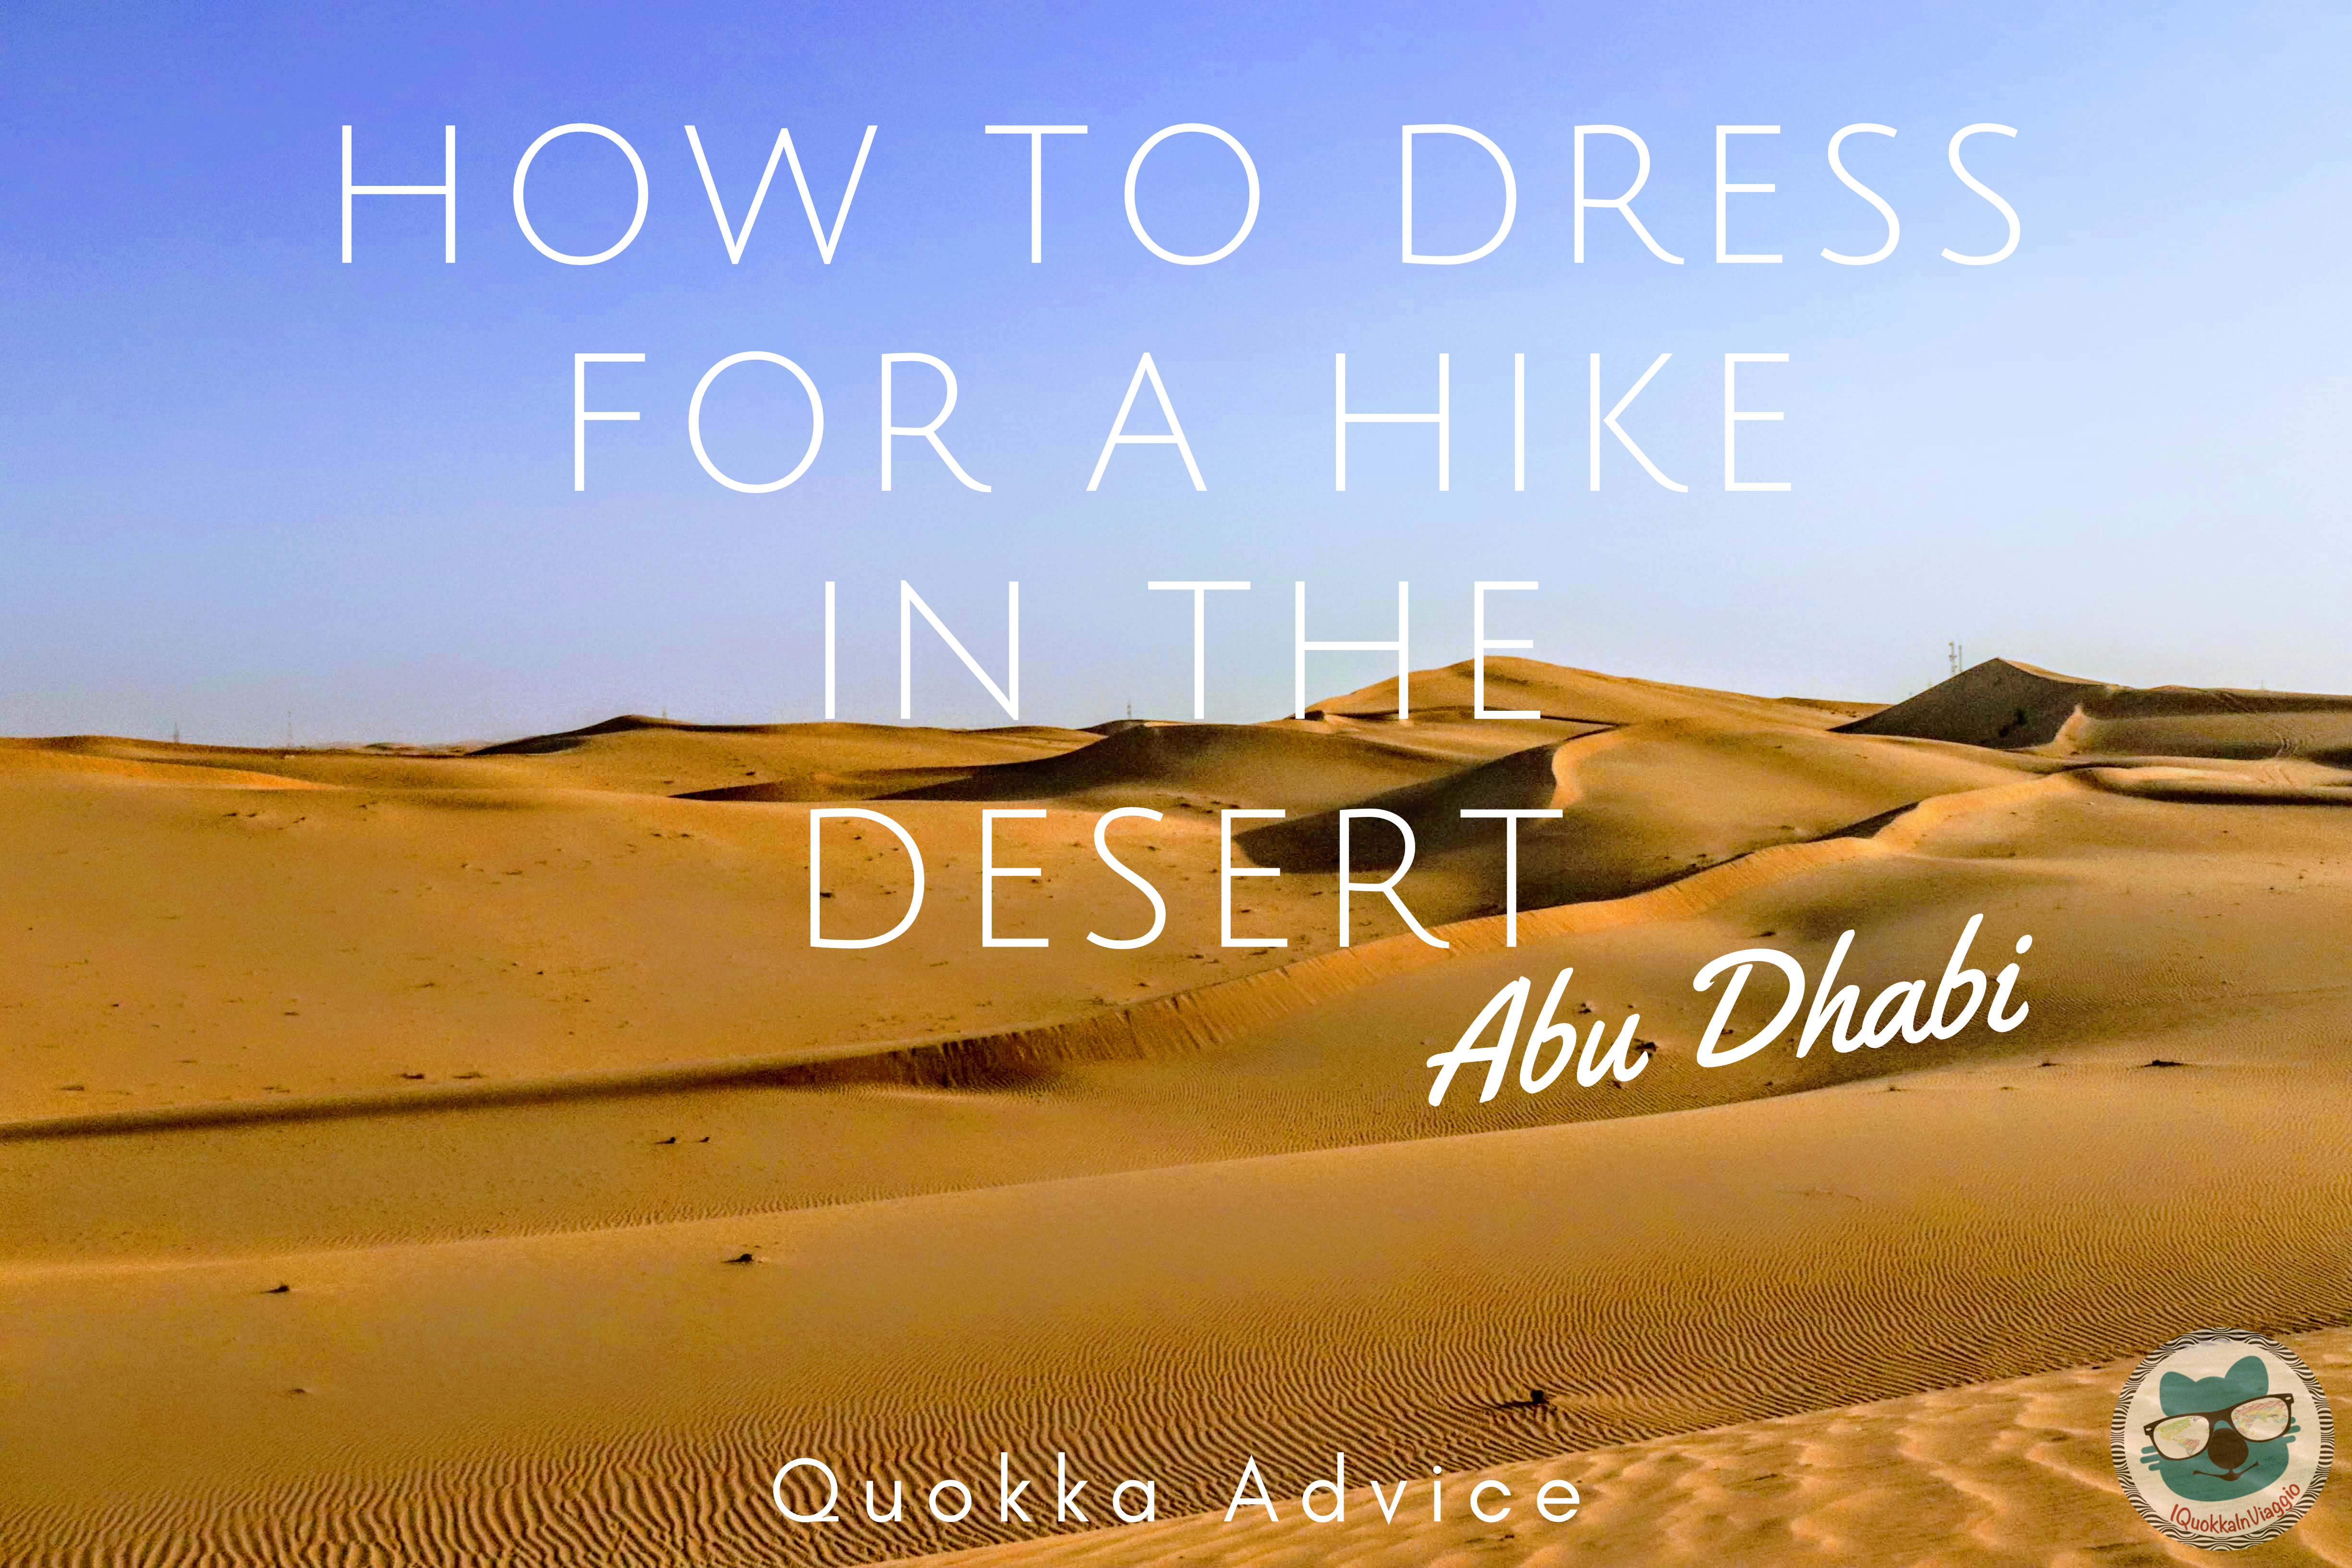 Abu Dhabi - How to dress for a hike in the desert